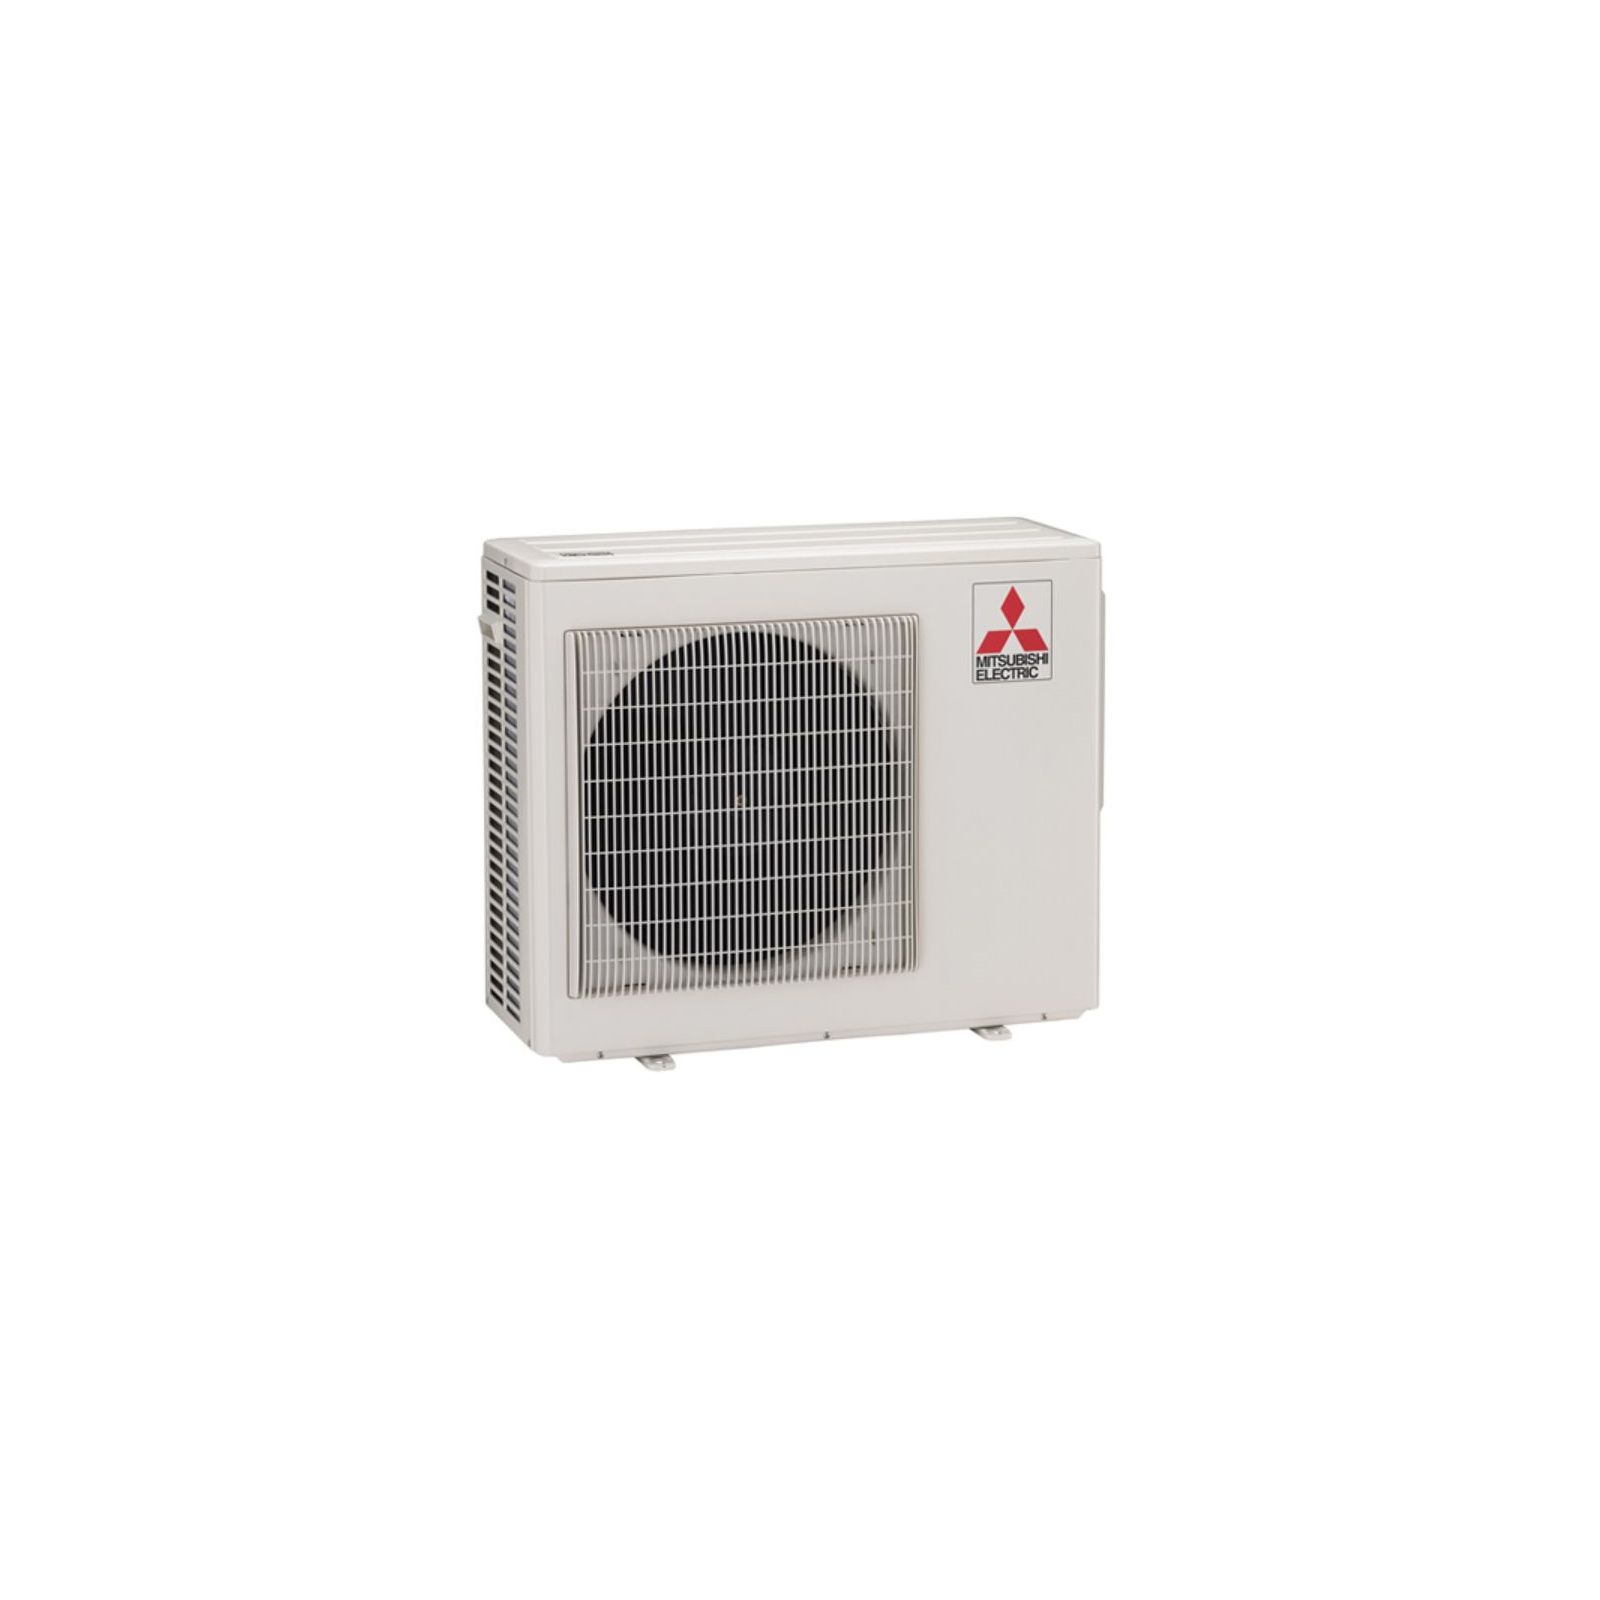 mini m sylvane angle mitsubishi series split heat pump air conditioner outdoor mz